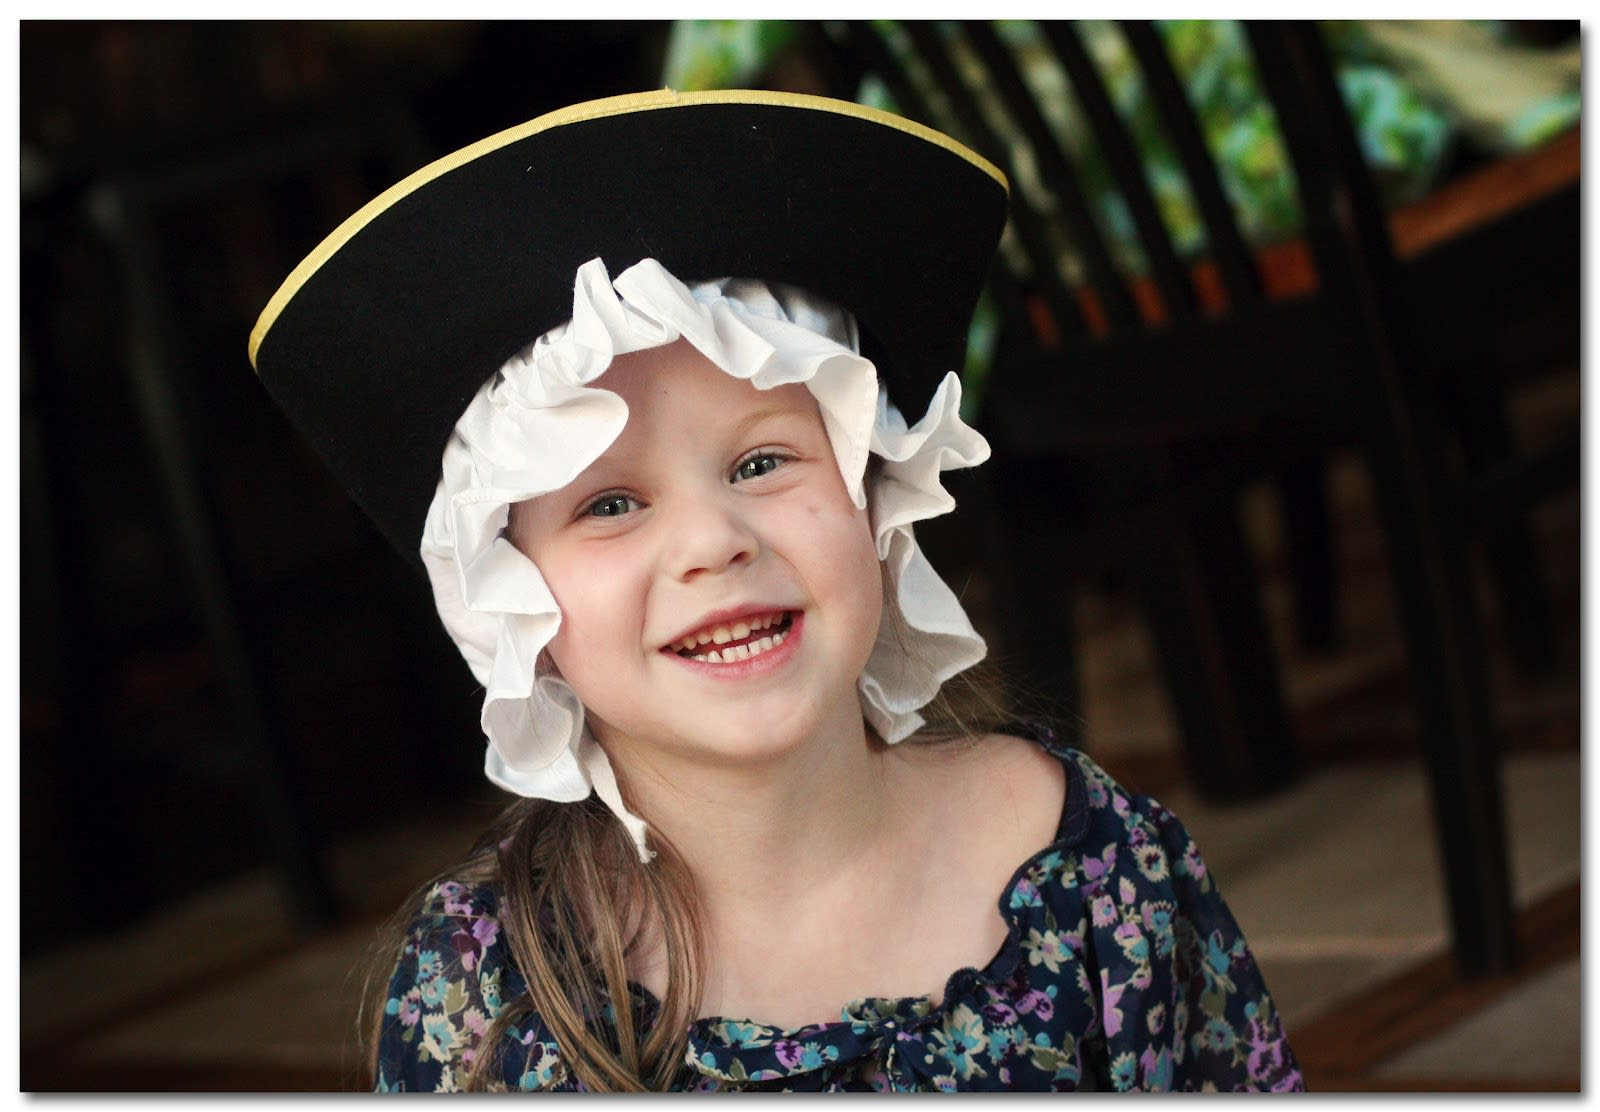 A young girl dressed in Colonial clothes